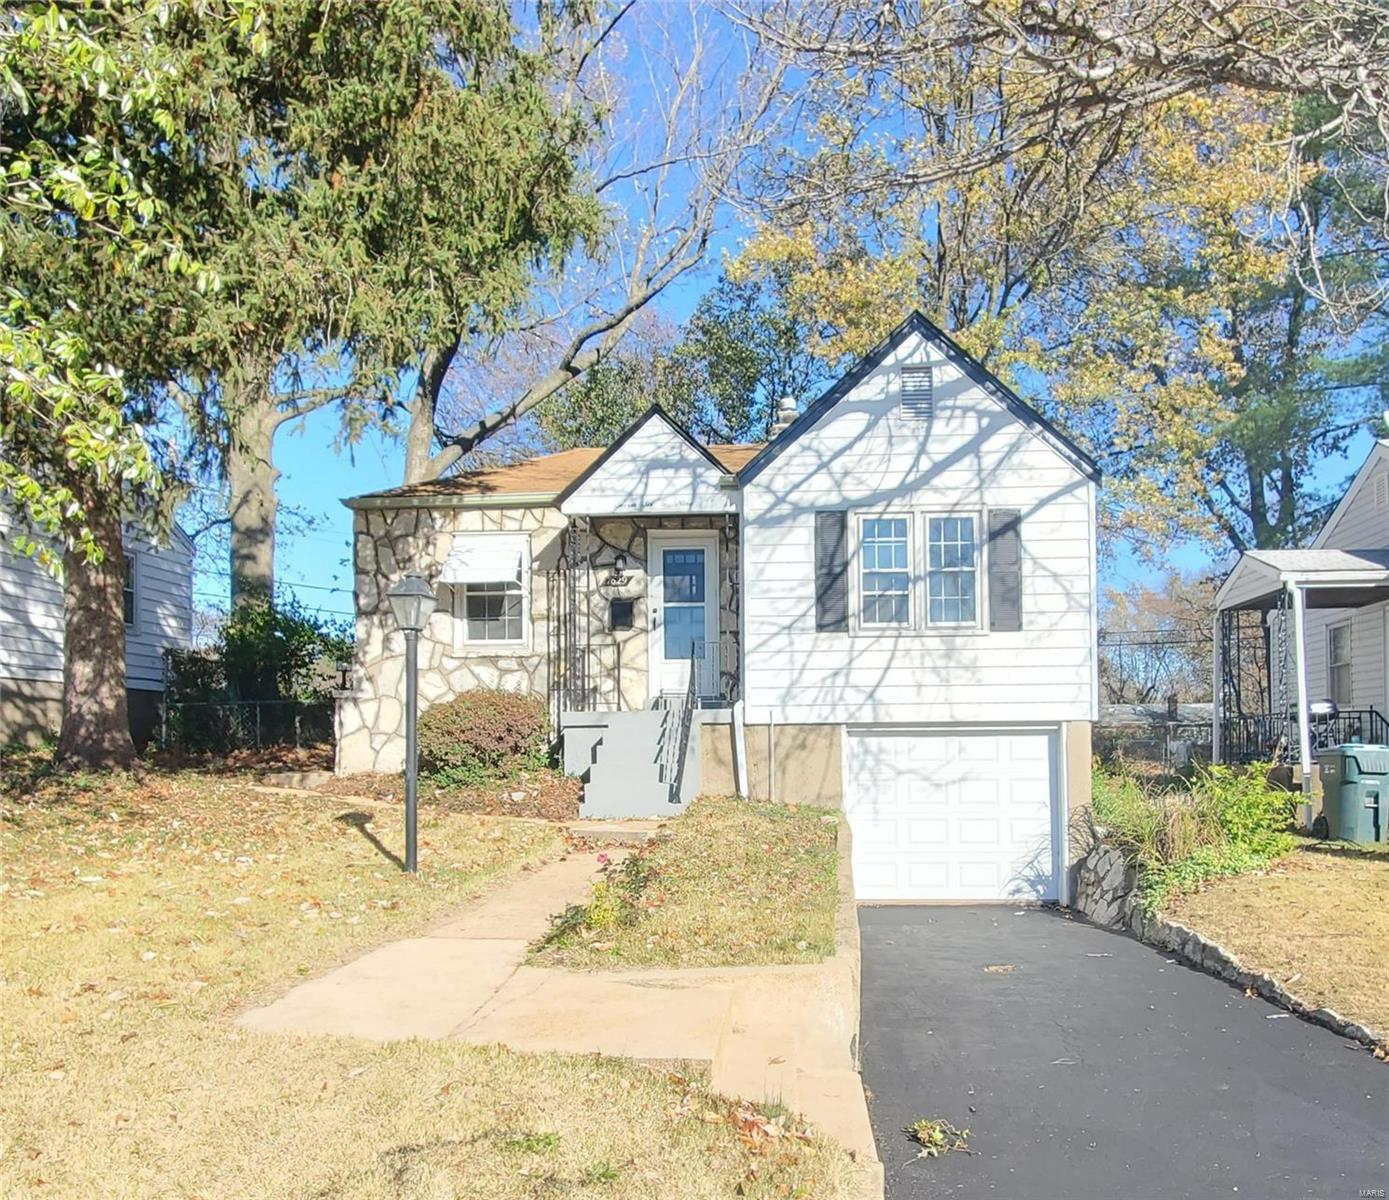 7629 Belwood Property Photo - St Louis, MO real estate listing